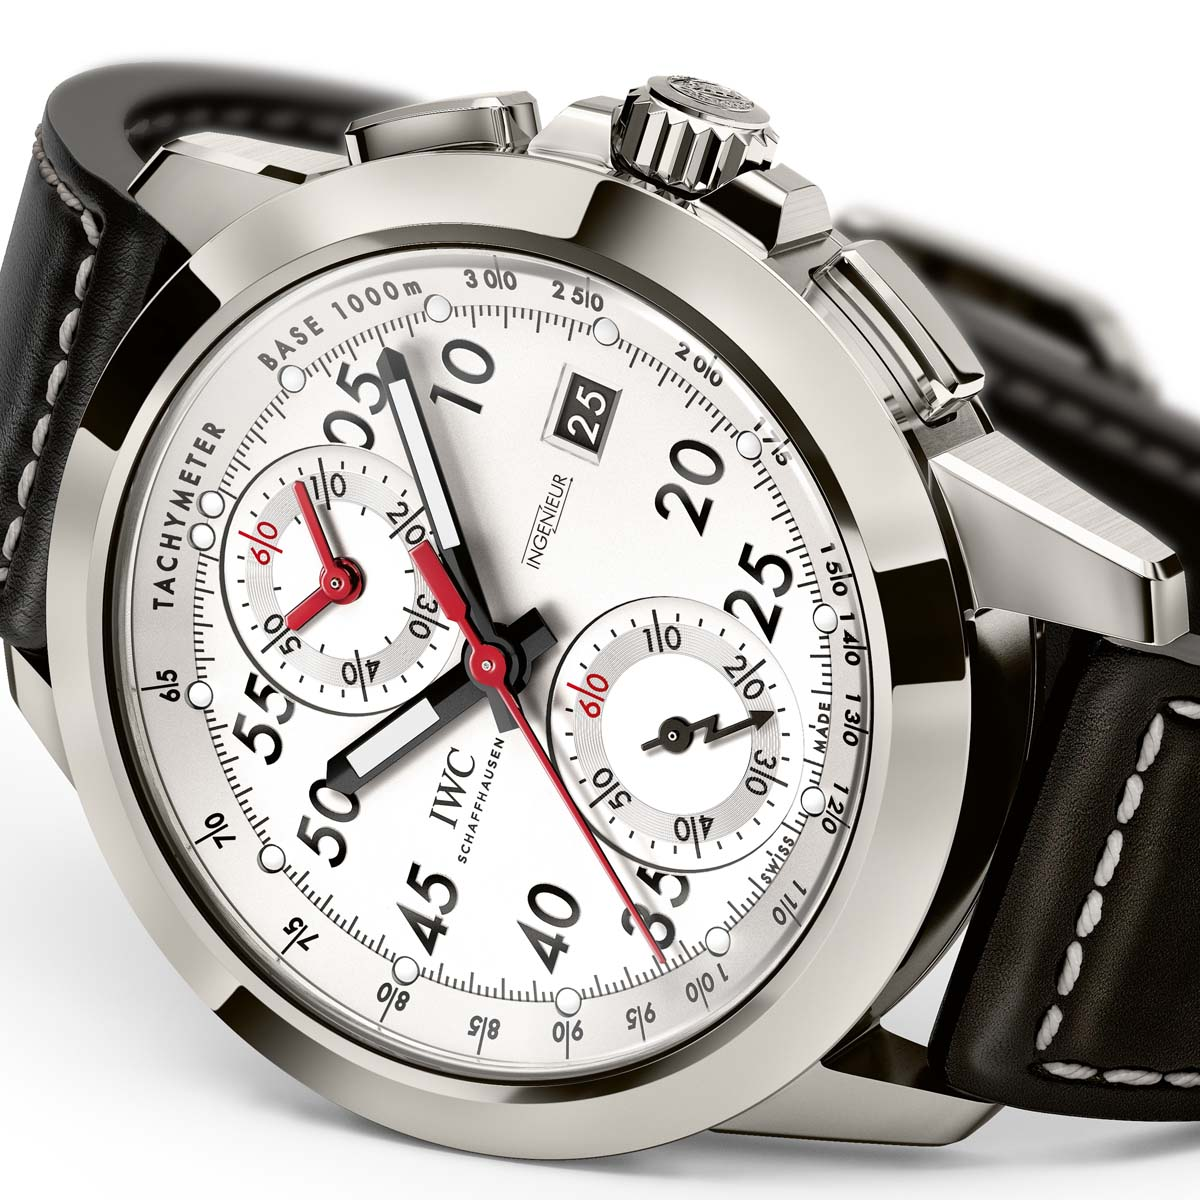 "The Watch Quote: Photo - IWC Ingenieur Chronograph Sport Edition ""50th Anniversary of Mercedes-AMG�"